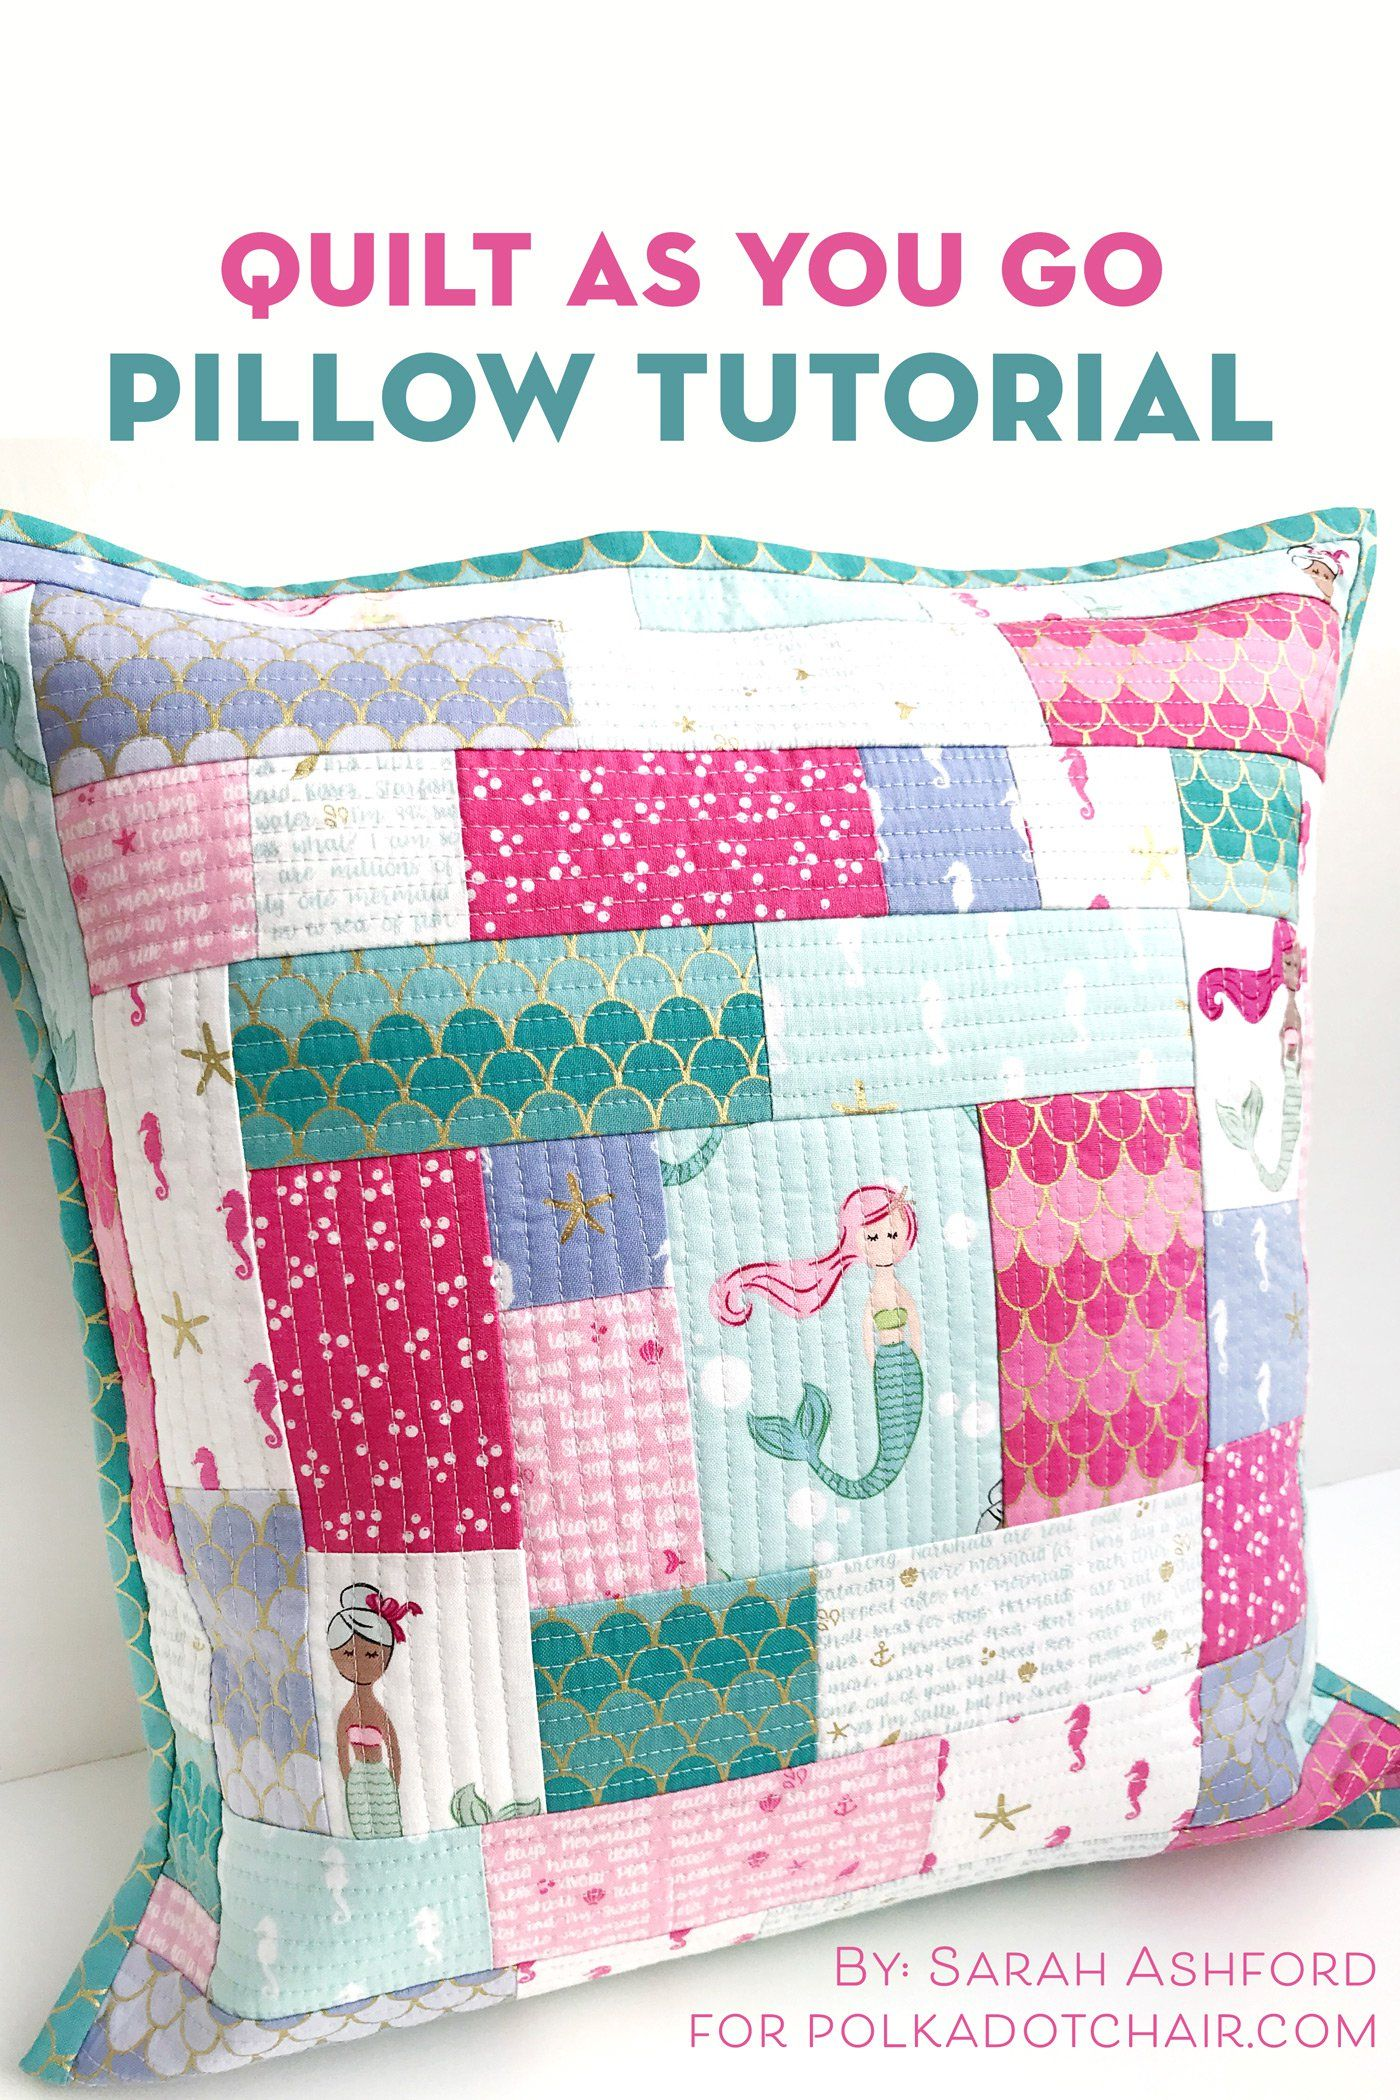 How To Make A Simple Patchwork Pillow Using The Quilt As You Go